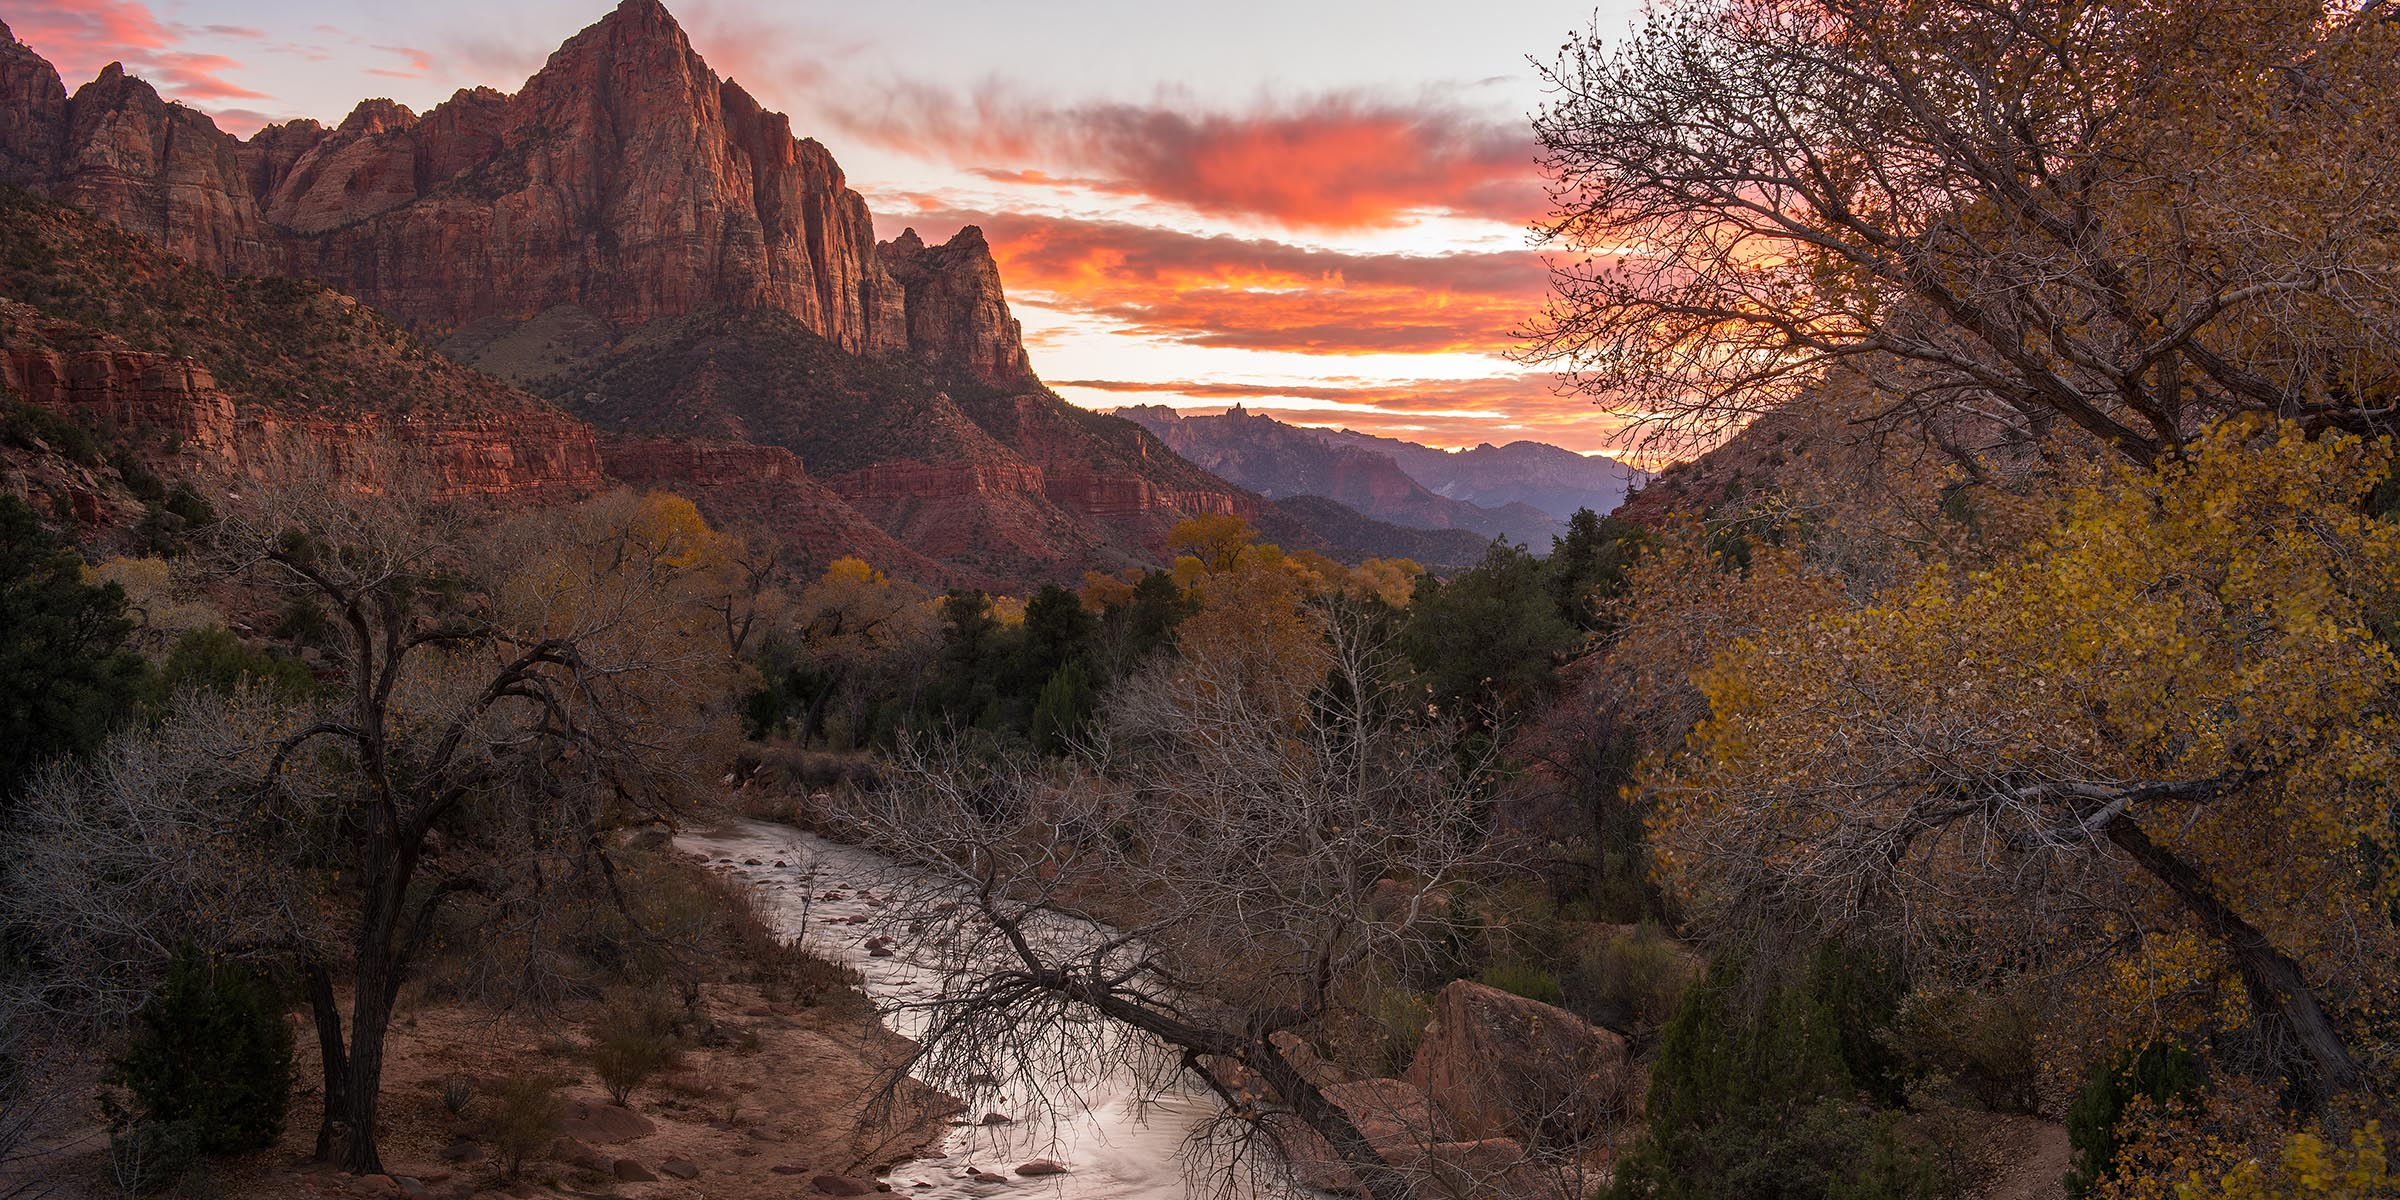 Photograph of The Watchman at Zion National Park by Brent Goldman Photography